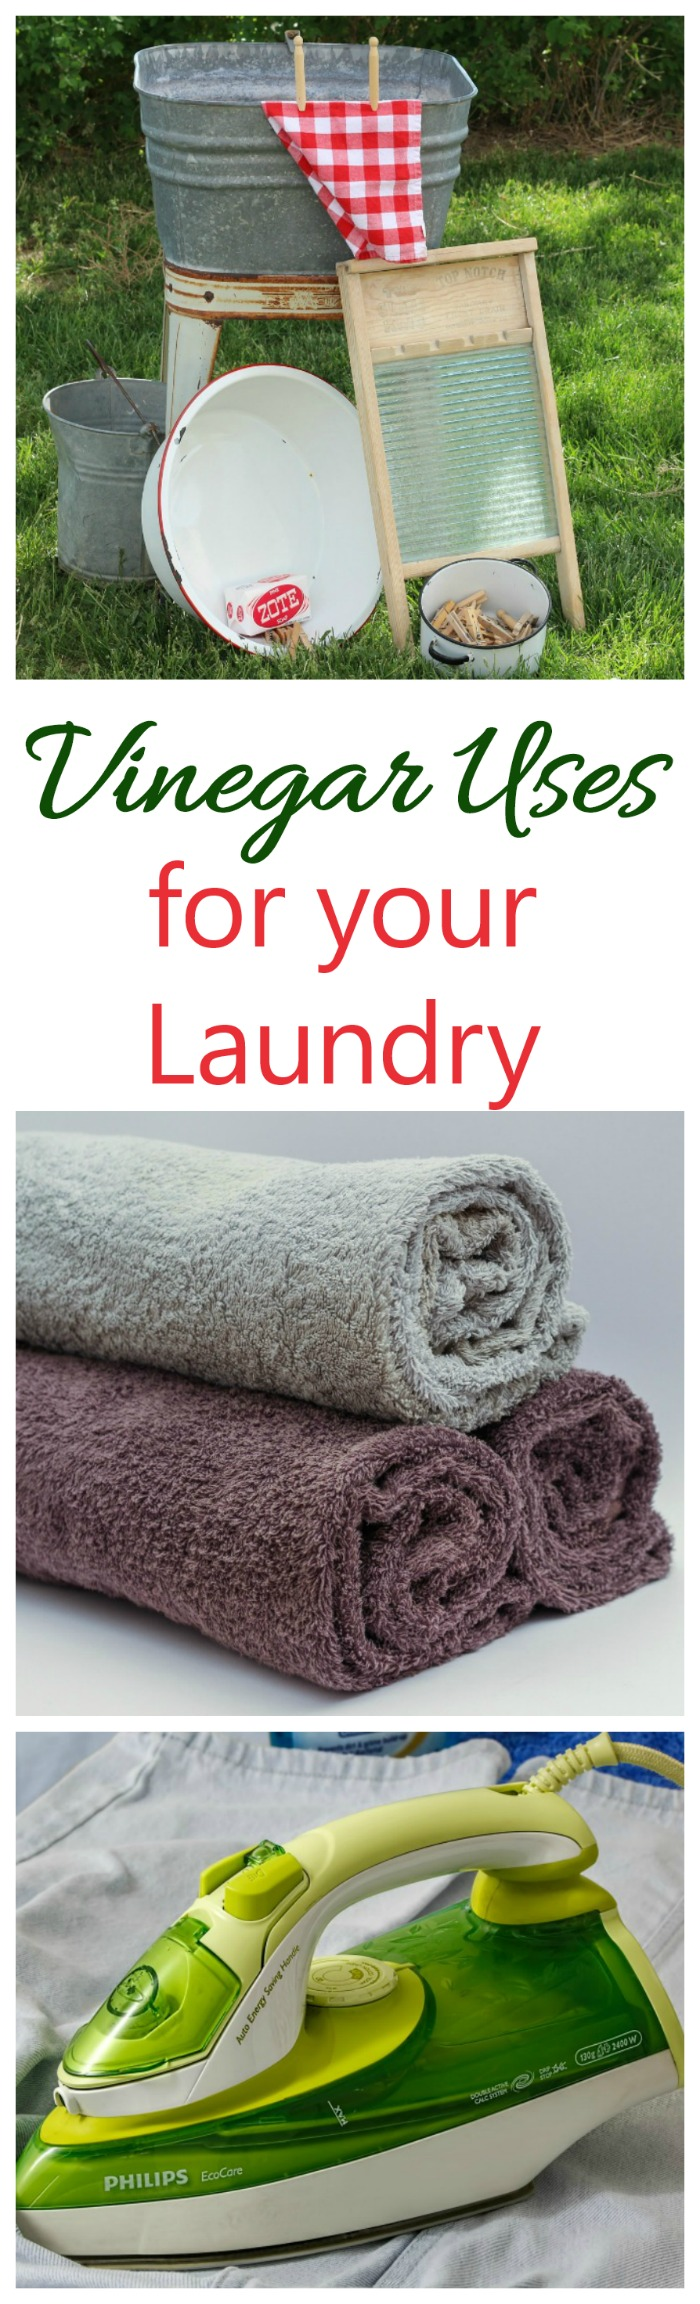 Vinegar can be used in many ways to clean your laundry